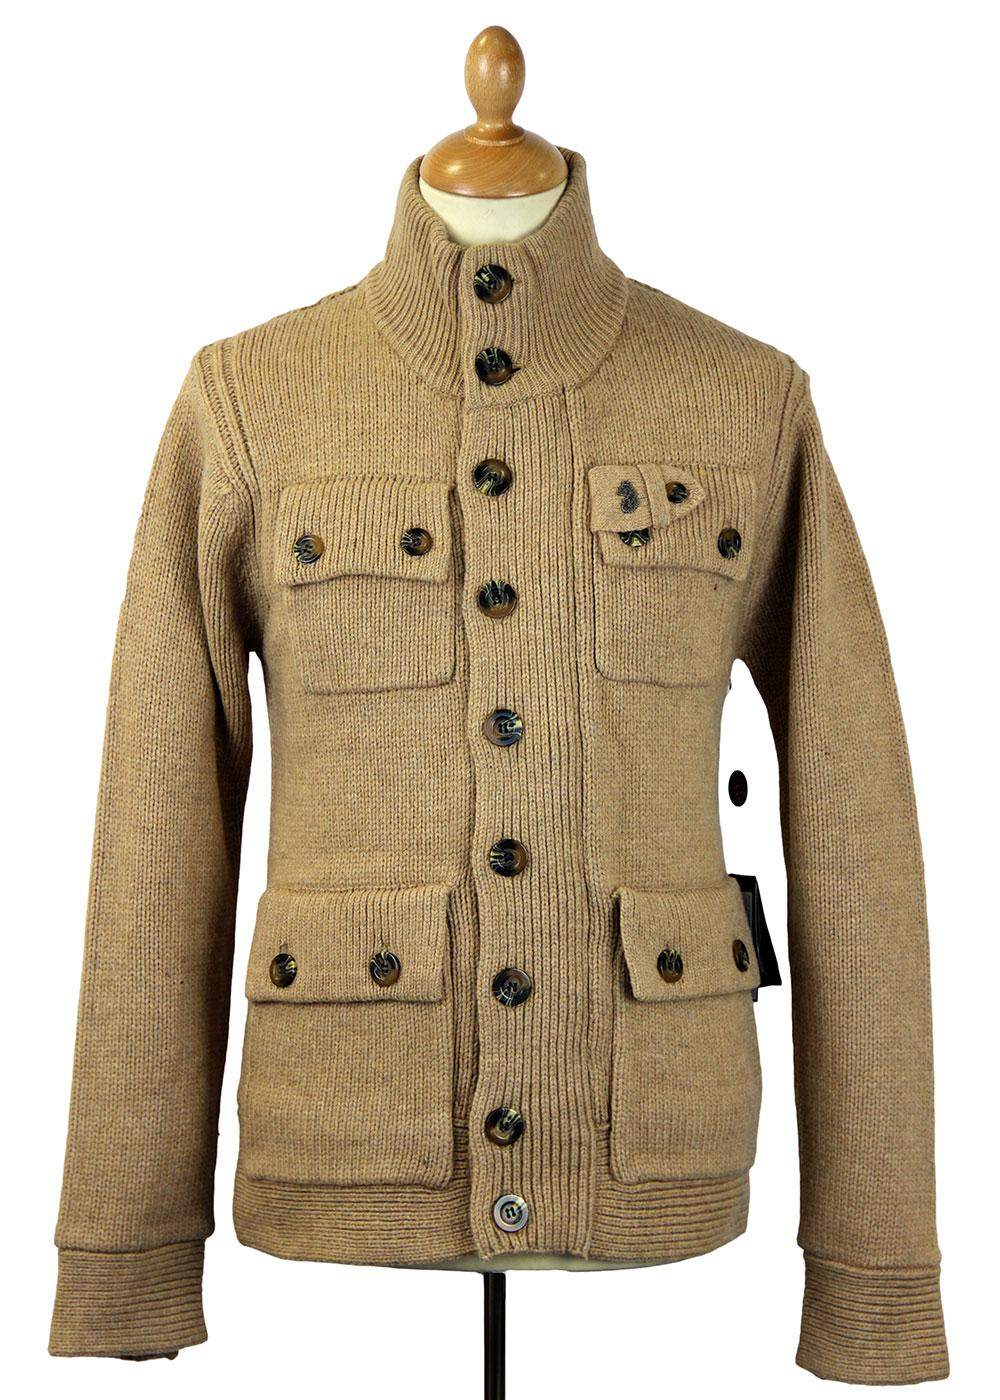 DoggyBarlows LUKE 1977 Retro Knit Cardigan Jacket